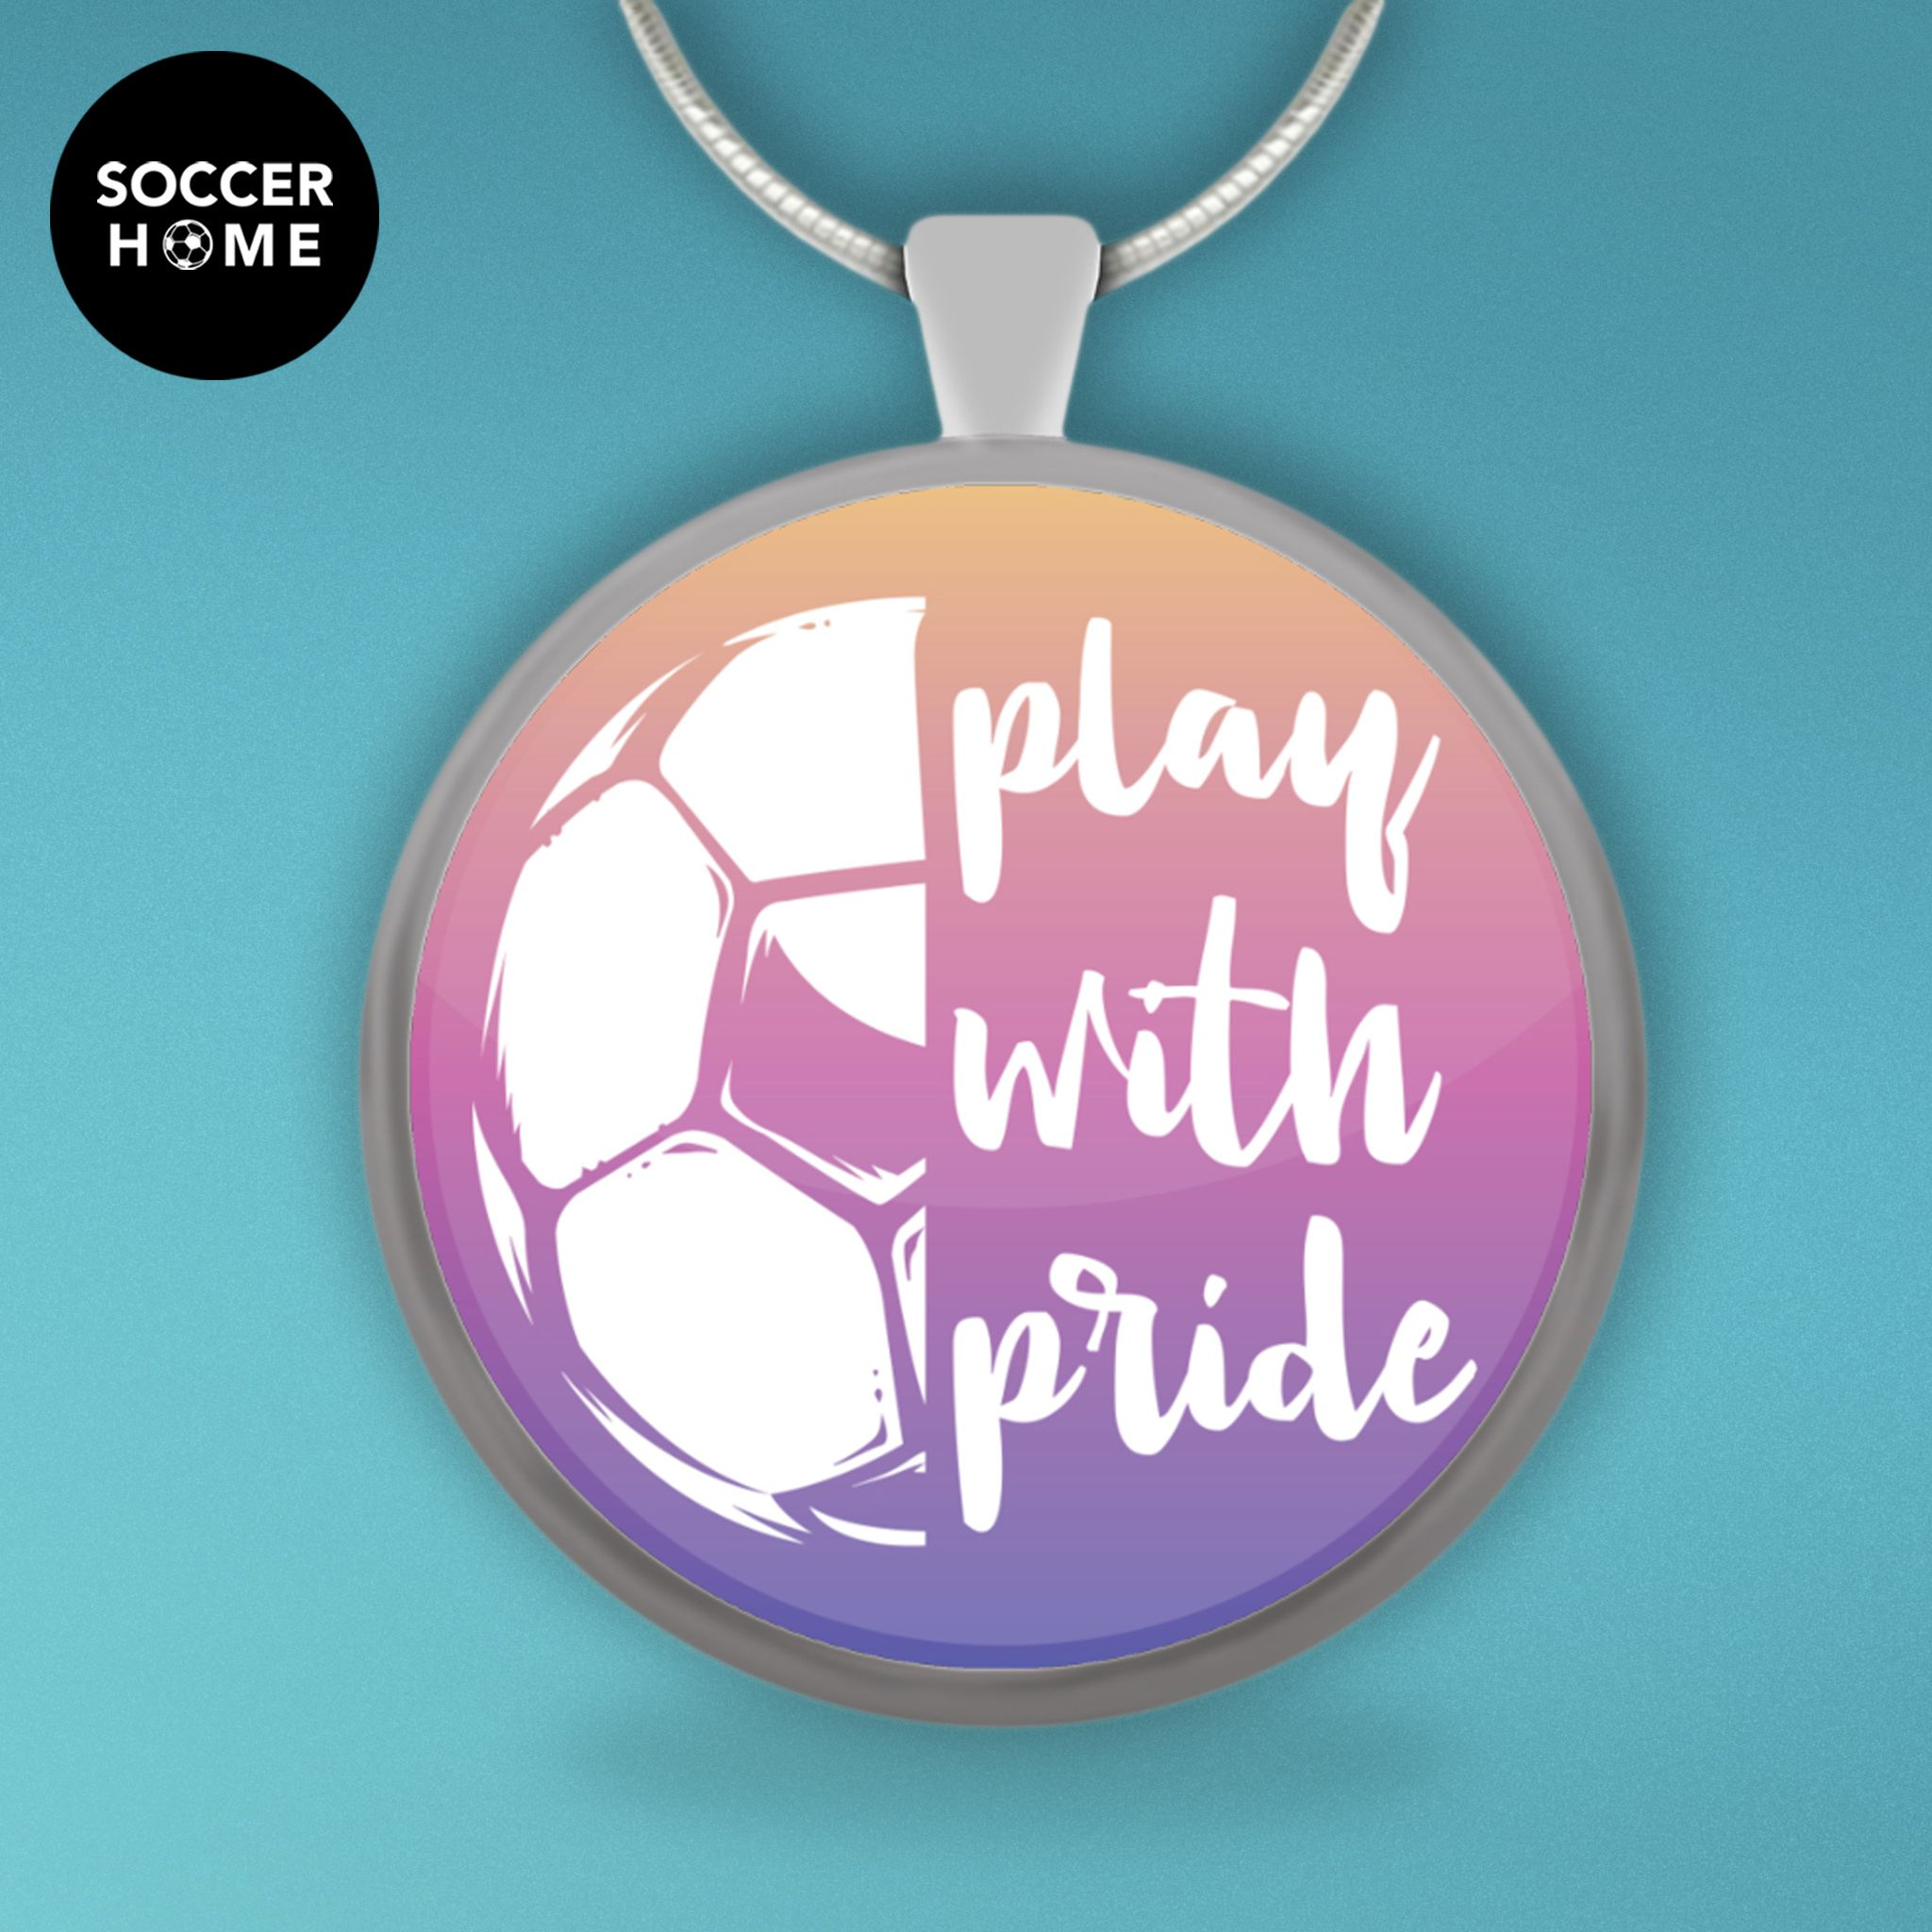 charm silver large pendants pendant sterling football soccer